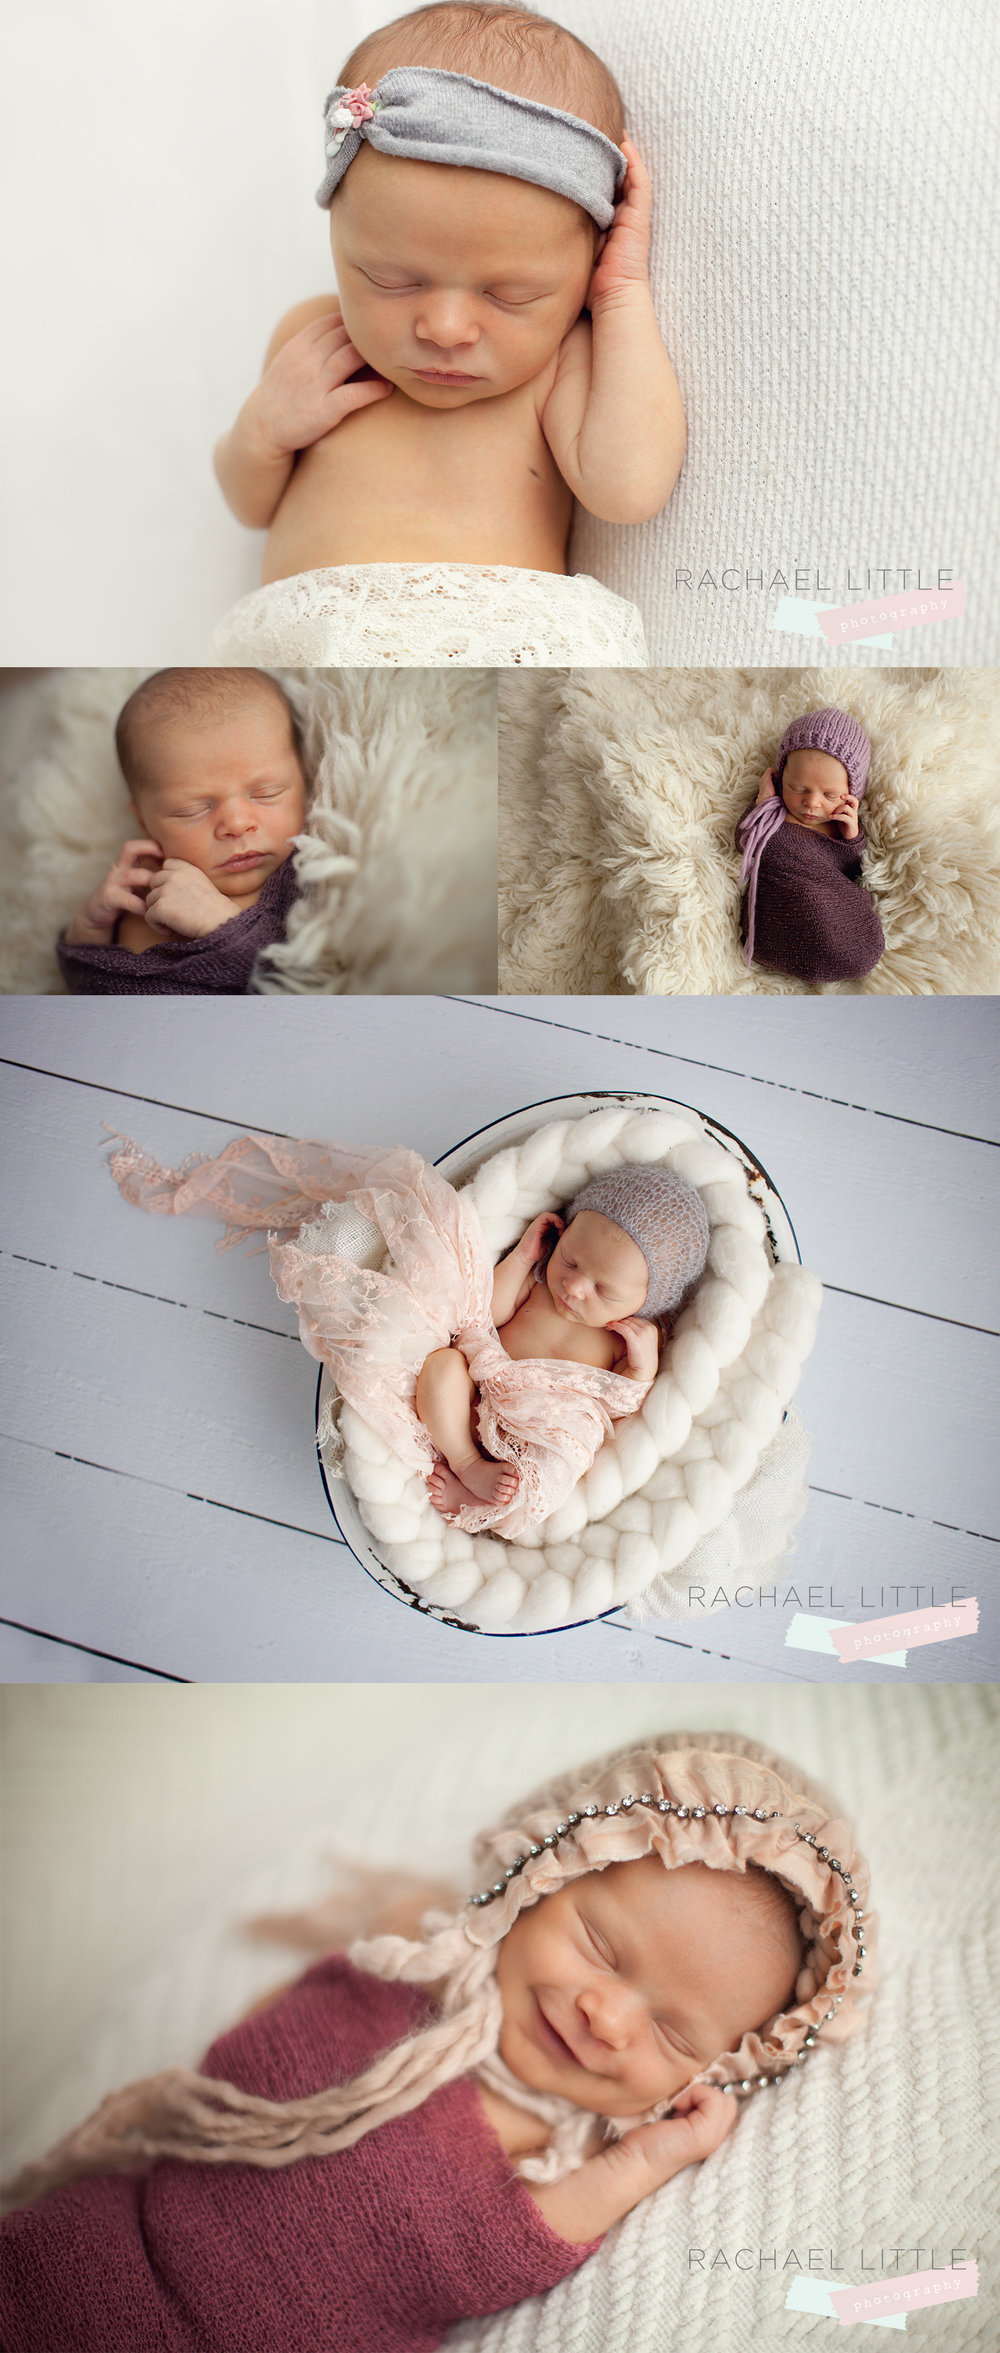 I'm Looking for a Newborn Photographer